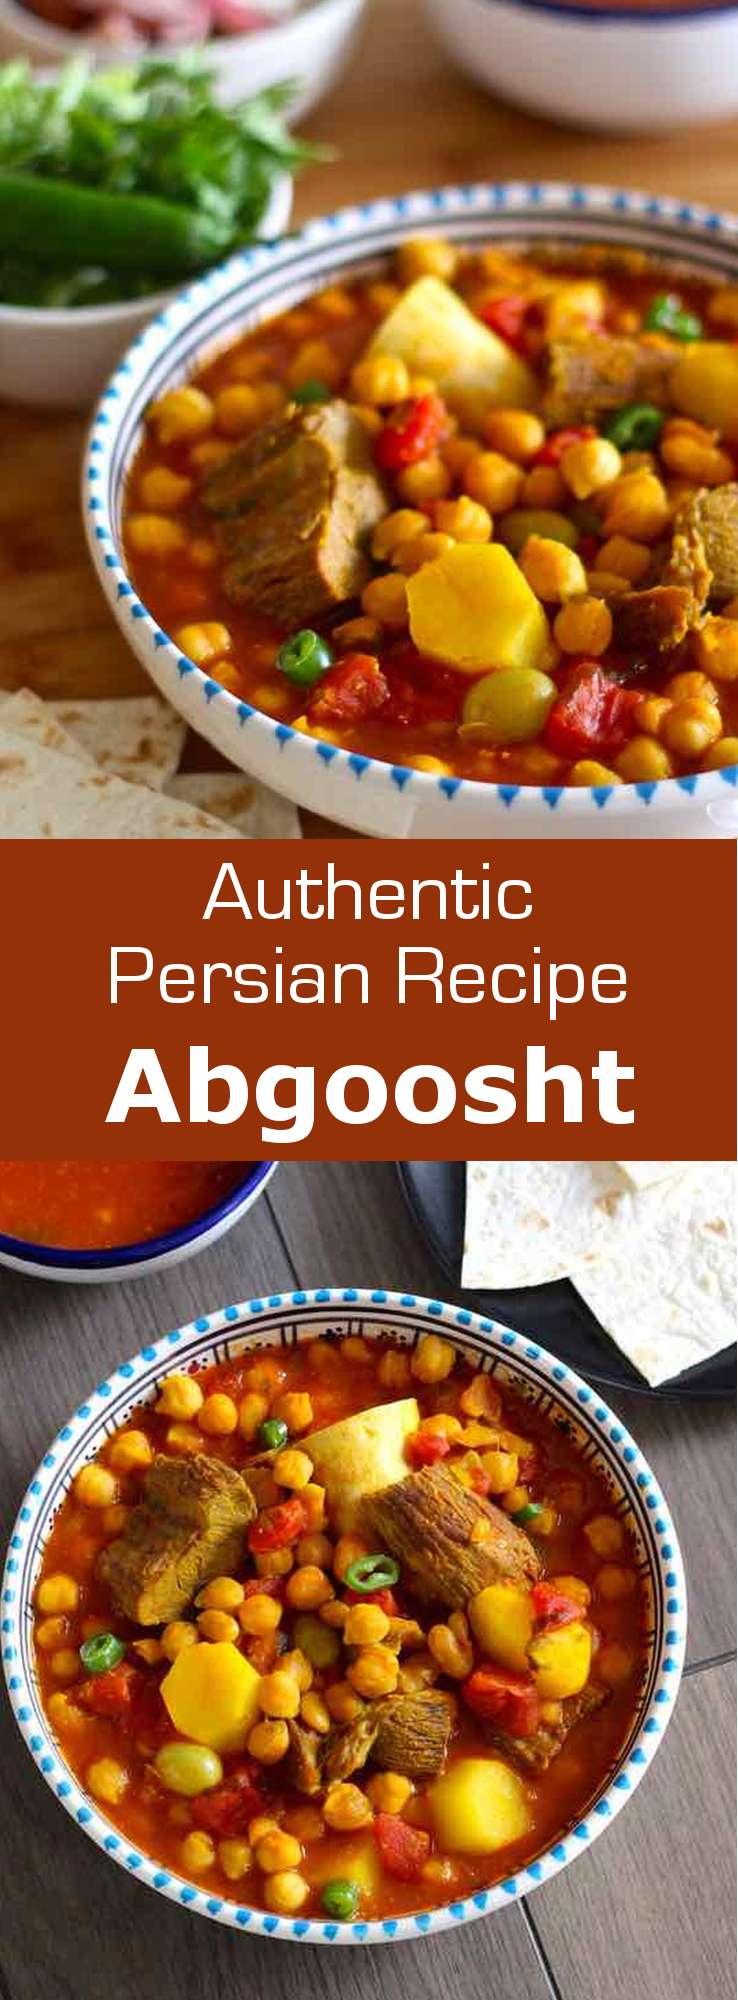 Abgoosht or dizi is a Persian soup or stew that is traditionally prepared with lamb, chickpeas, white beans, potatoes and tomatoes. #Persian #Iranian #PersianCuisine #PersianDish #PersianRecipe #IranianCuisine #IranianDish #IranianRecipe #Soup #PersianSoup #WorldCuisine #MiddleEasternCuisine #196flavors